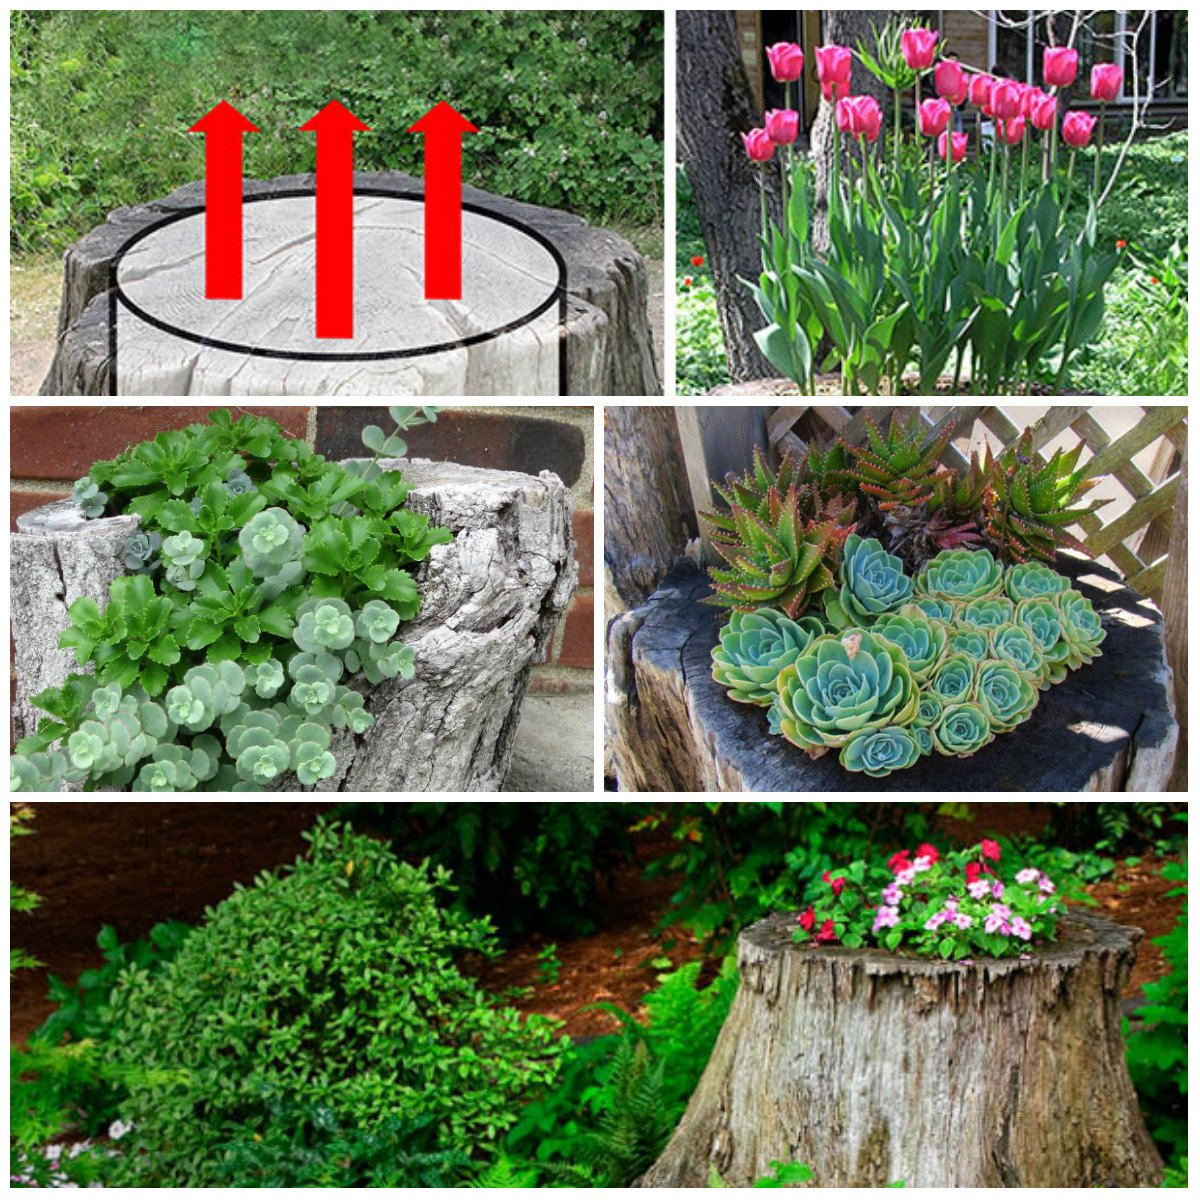 What Are The Best Flowers To Decorate A Tree Stump In The Garden?